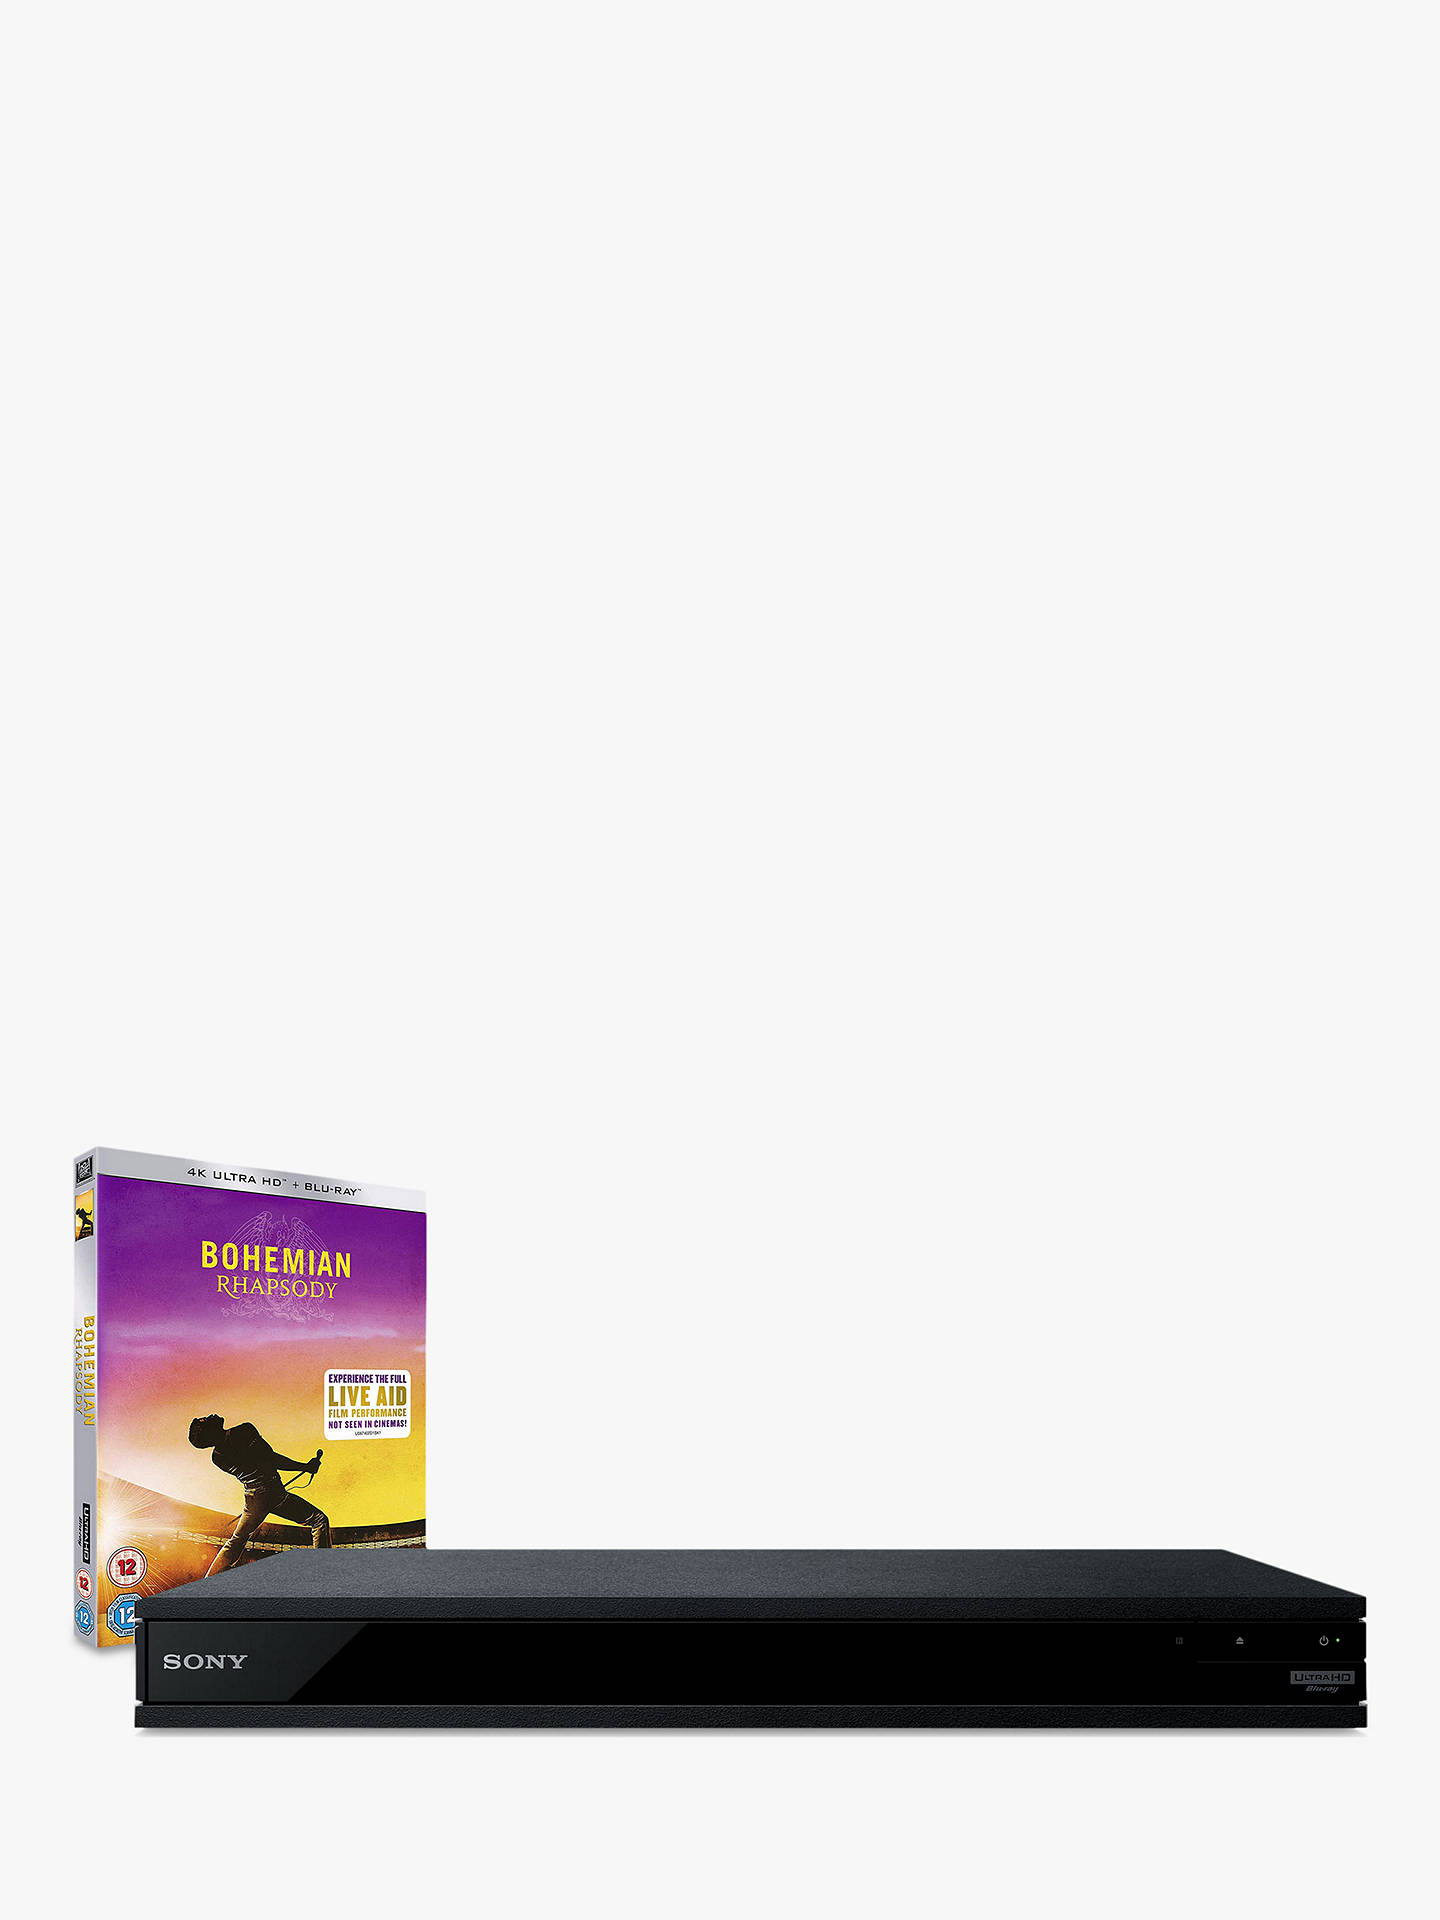 Sony UBP-X800M2 Smart 3D 4K UHD HDR Upscaling Blu-Ray/DVD Player with High  Resolution Audio